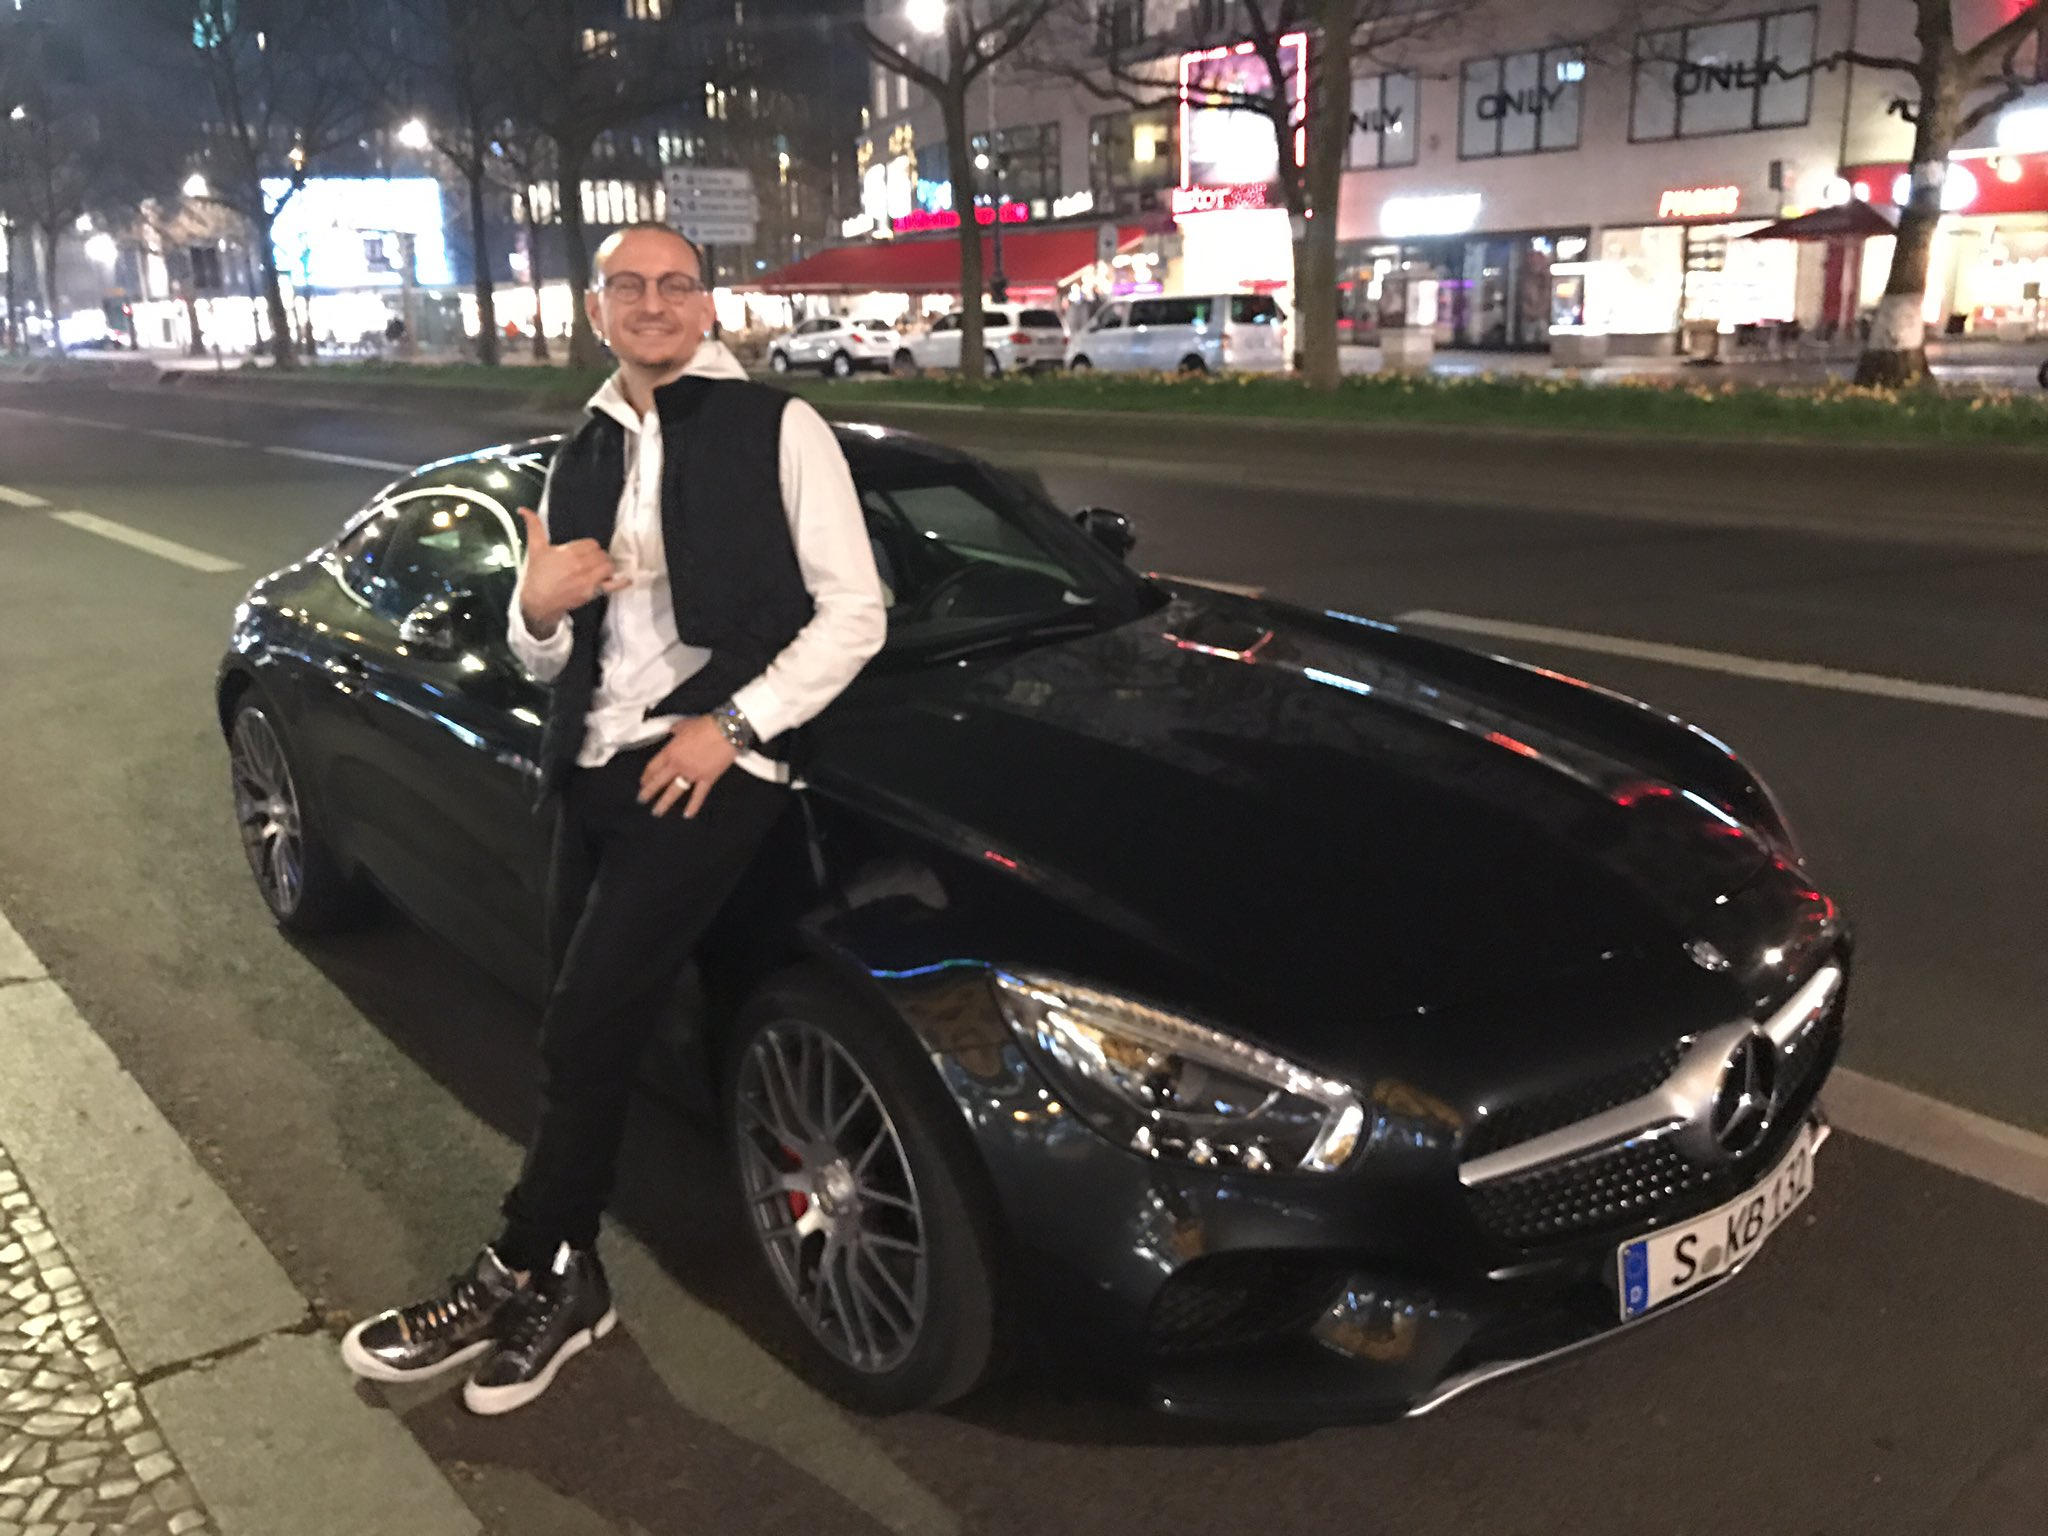 Thanks AMG for letting me drive the GTS while I'm in Berlin https://t.co/JoAMt3QxGe